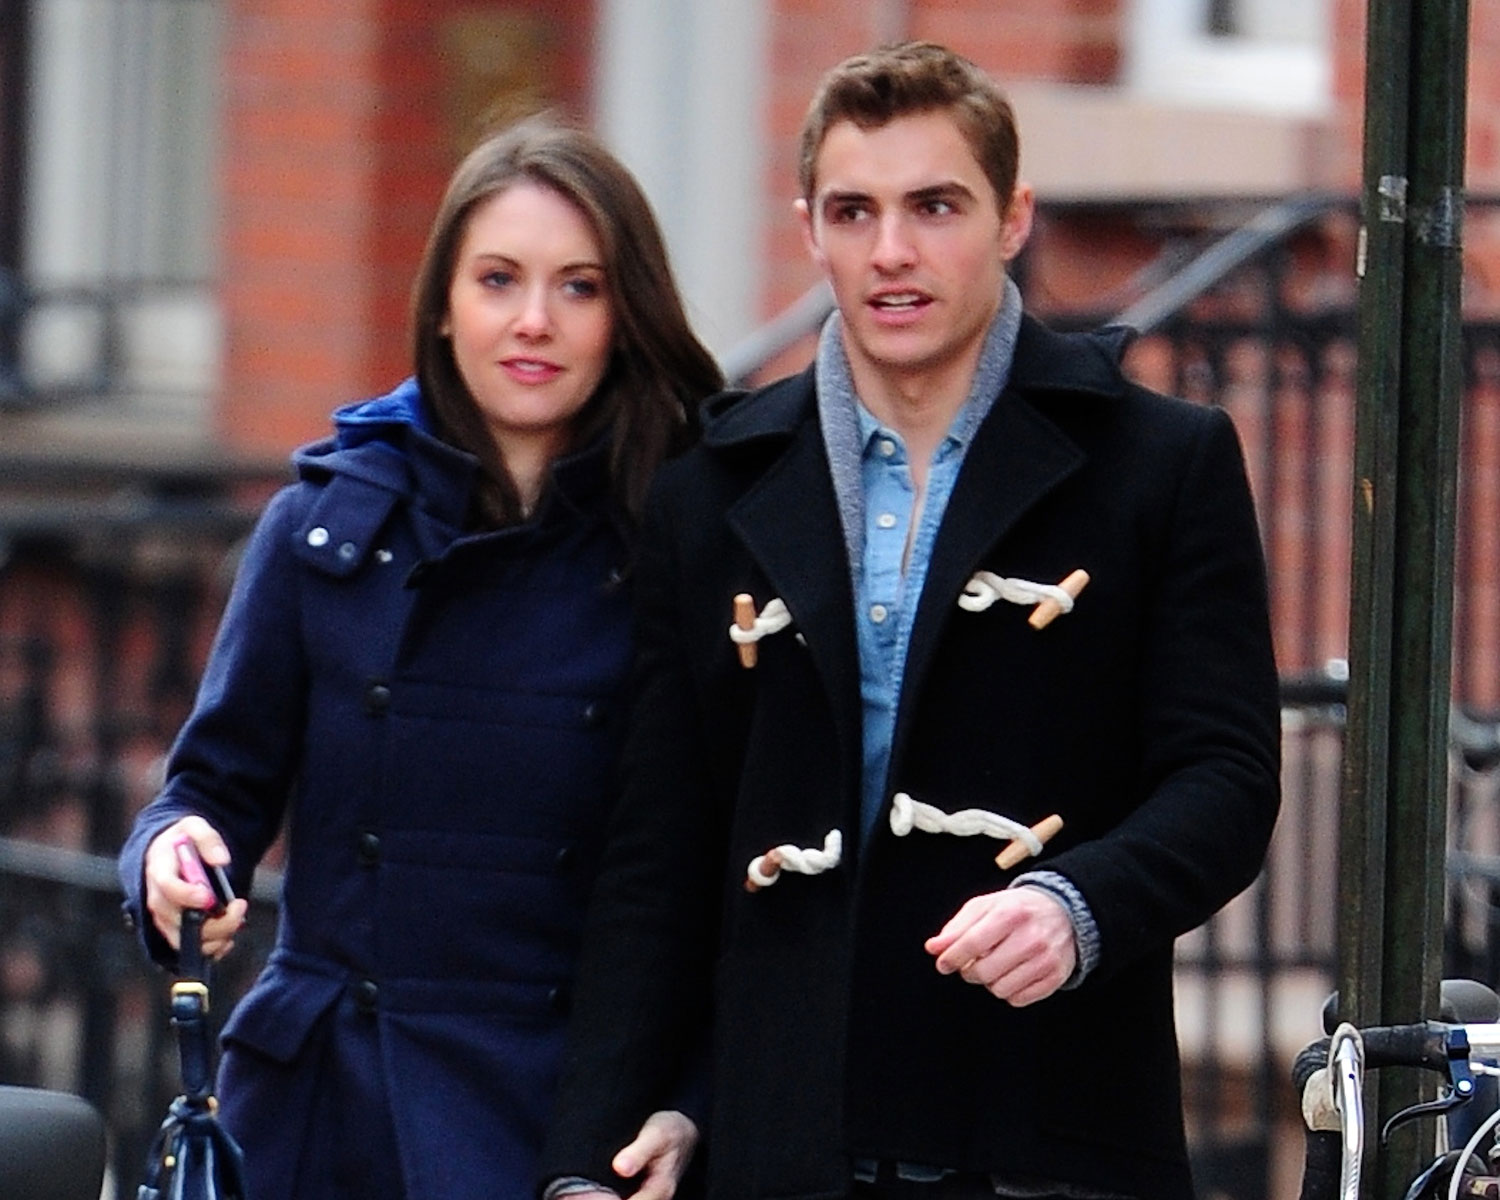 Alison Brie And Dave Franco Wedding.Dave Franco Speaks Out About His Secret Wedding To Alison Brie